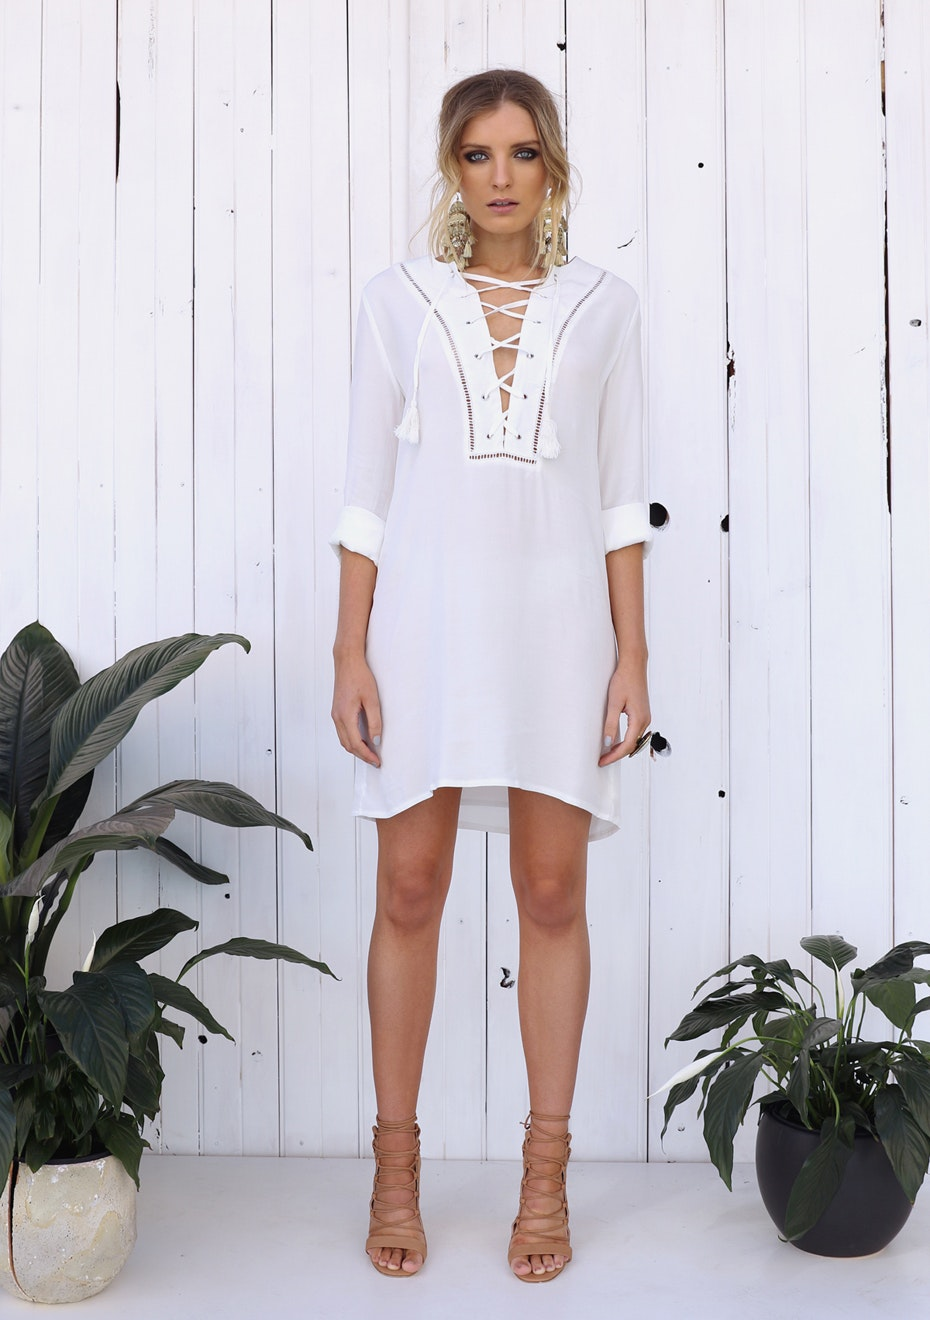 Madison - HARVEST TUNIC - WHITE